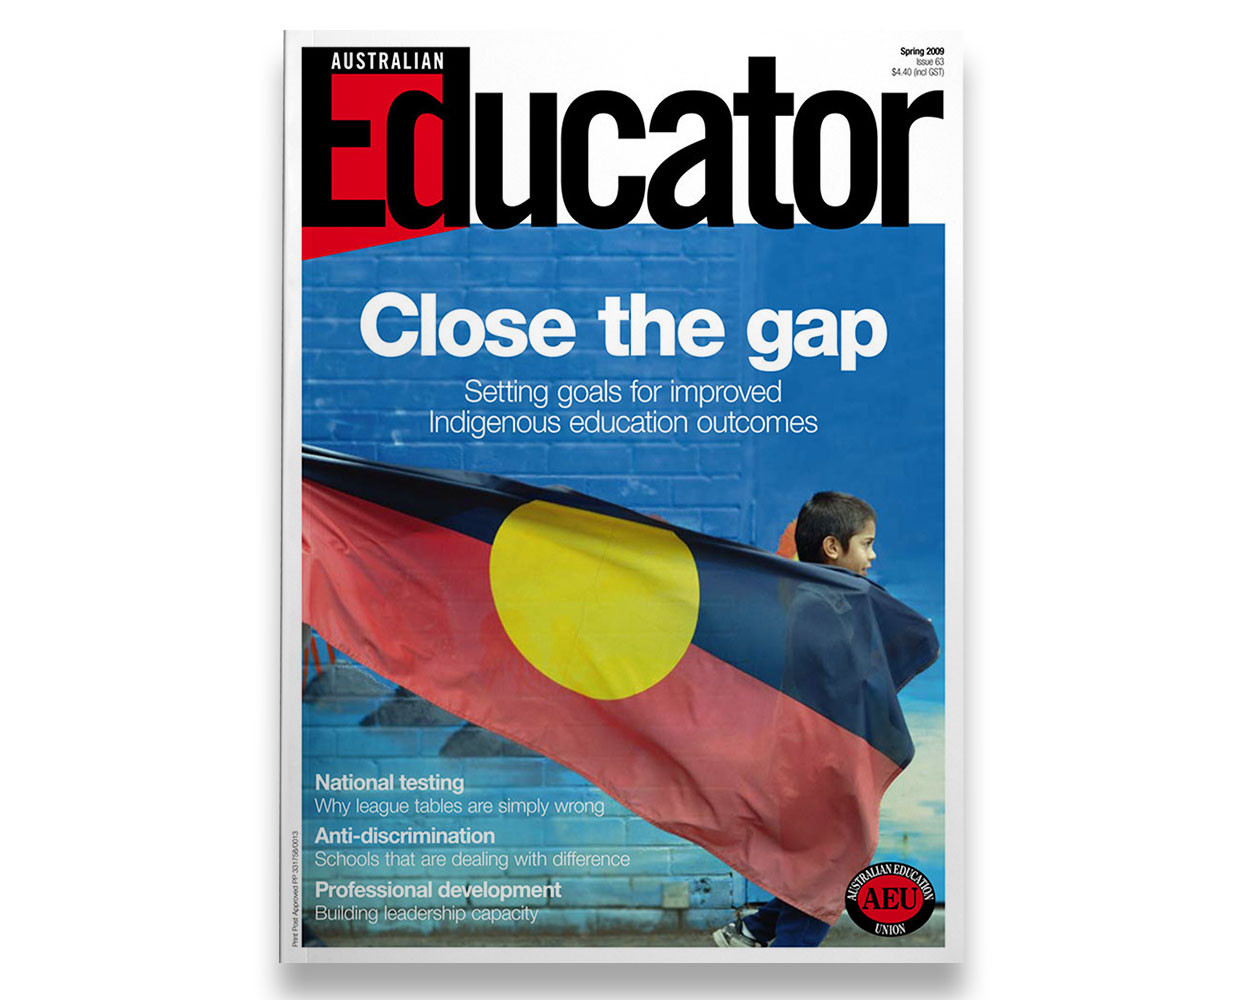 Australian Educator magazine for the AEU